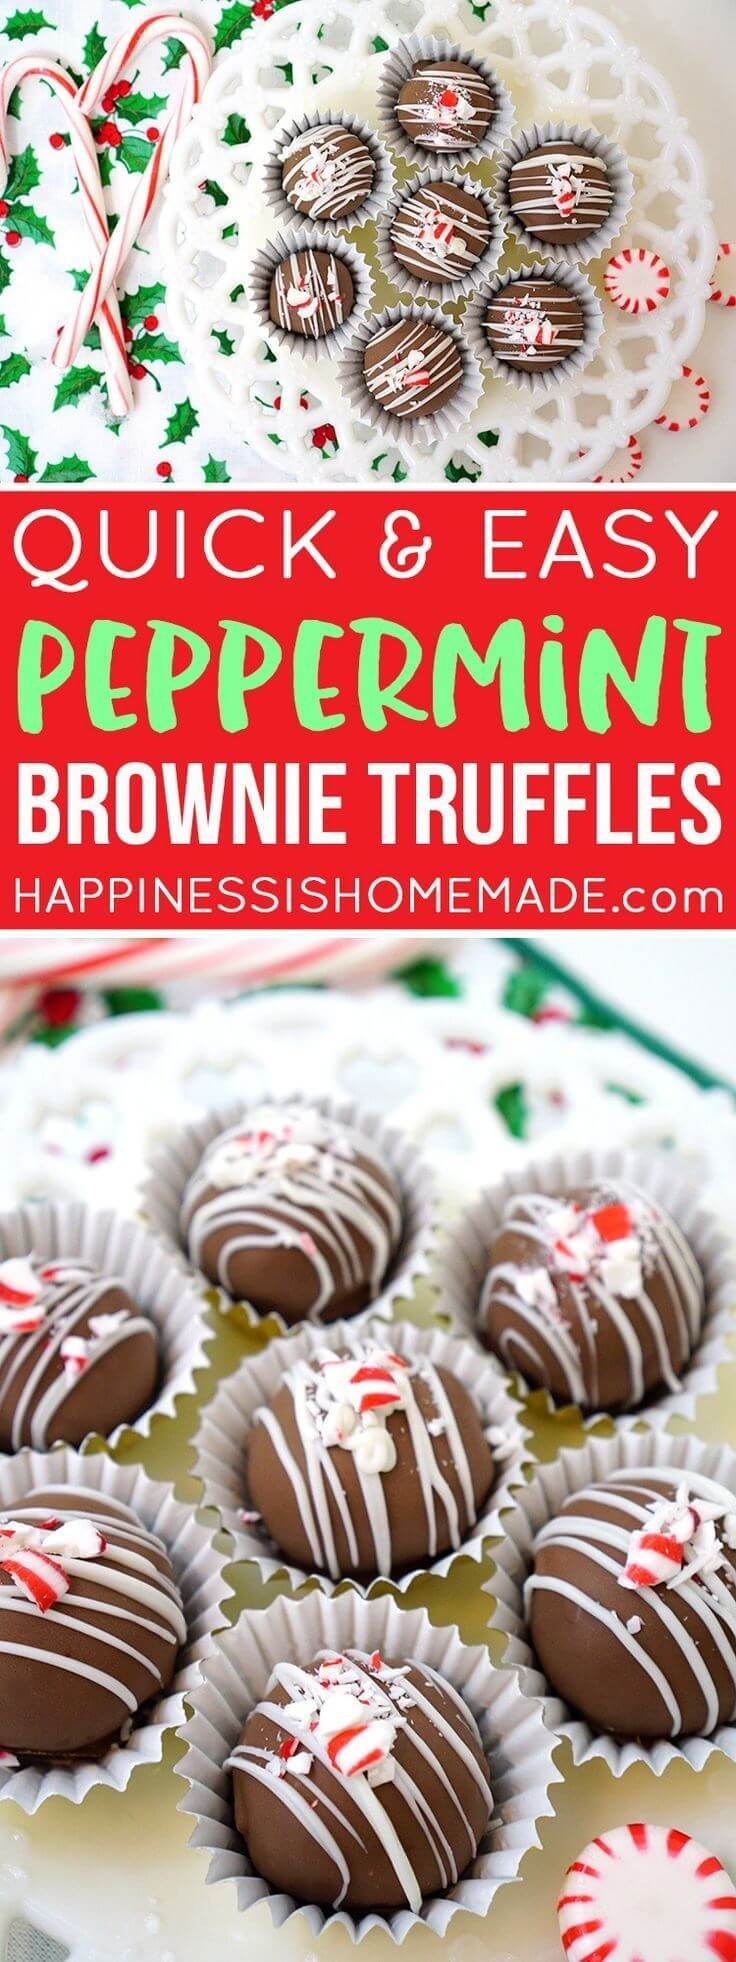 Quick and Easy Peppermint Brownie Truffles(1)